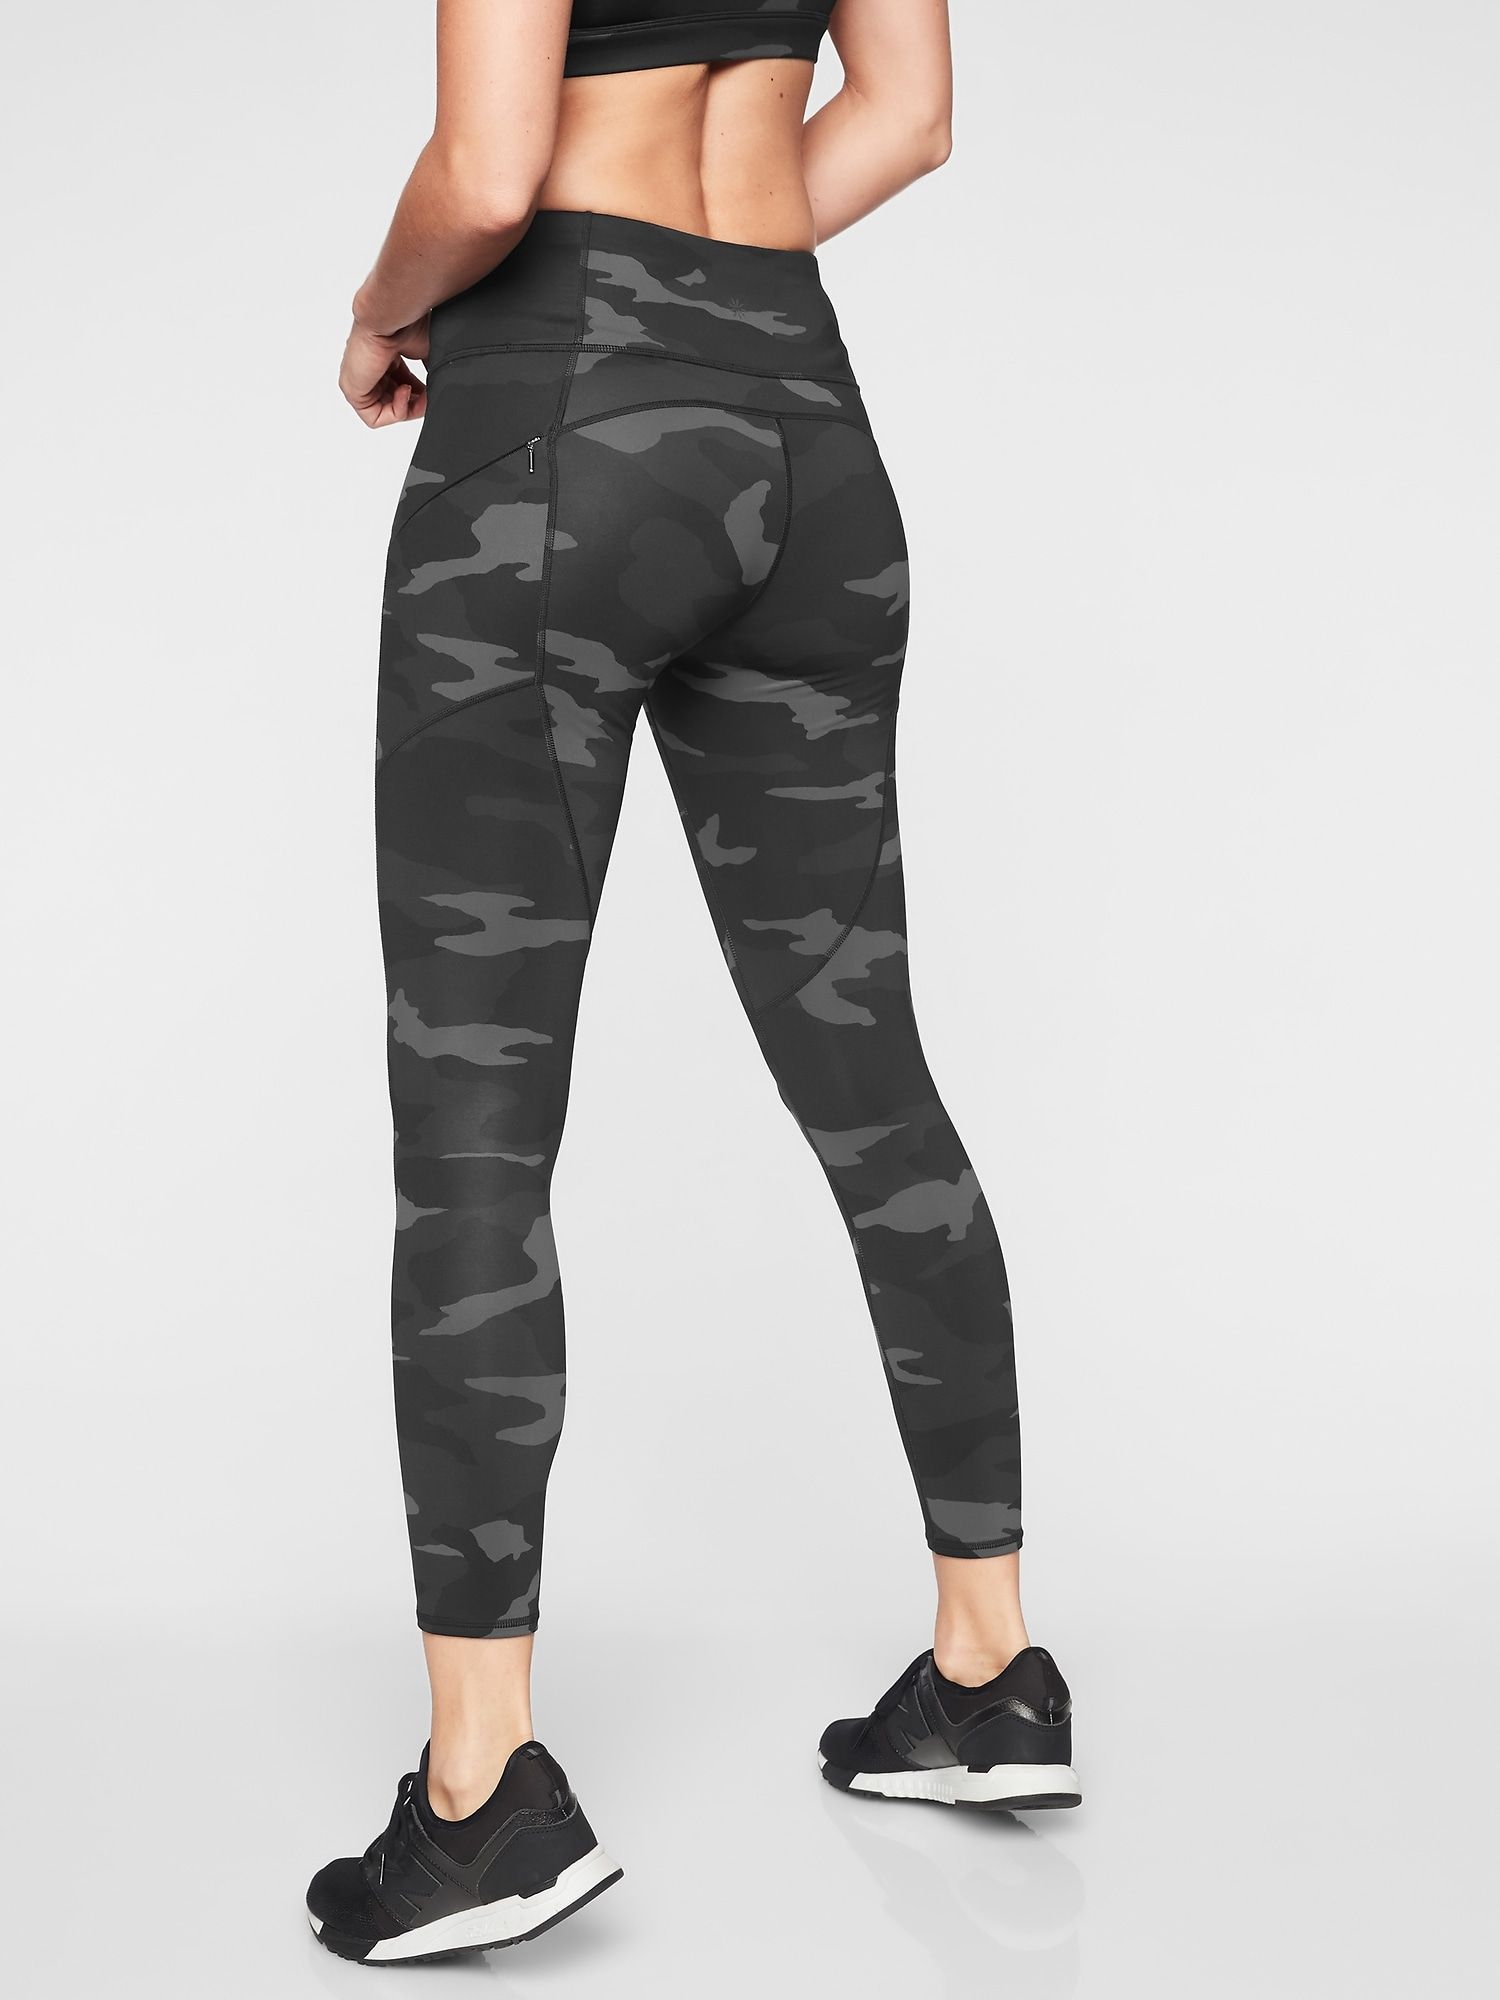 Camo Contender 7 8 Tight In Powerlift Athleta Camo Leggings Outfit Sporty Outfits Camo Leggings